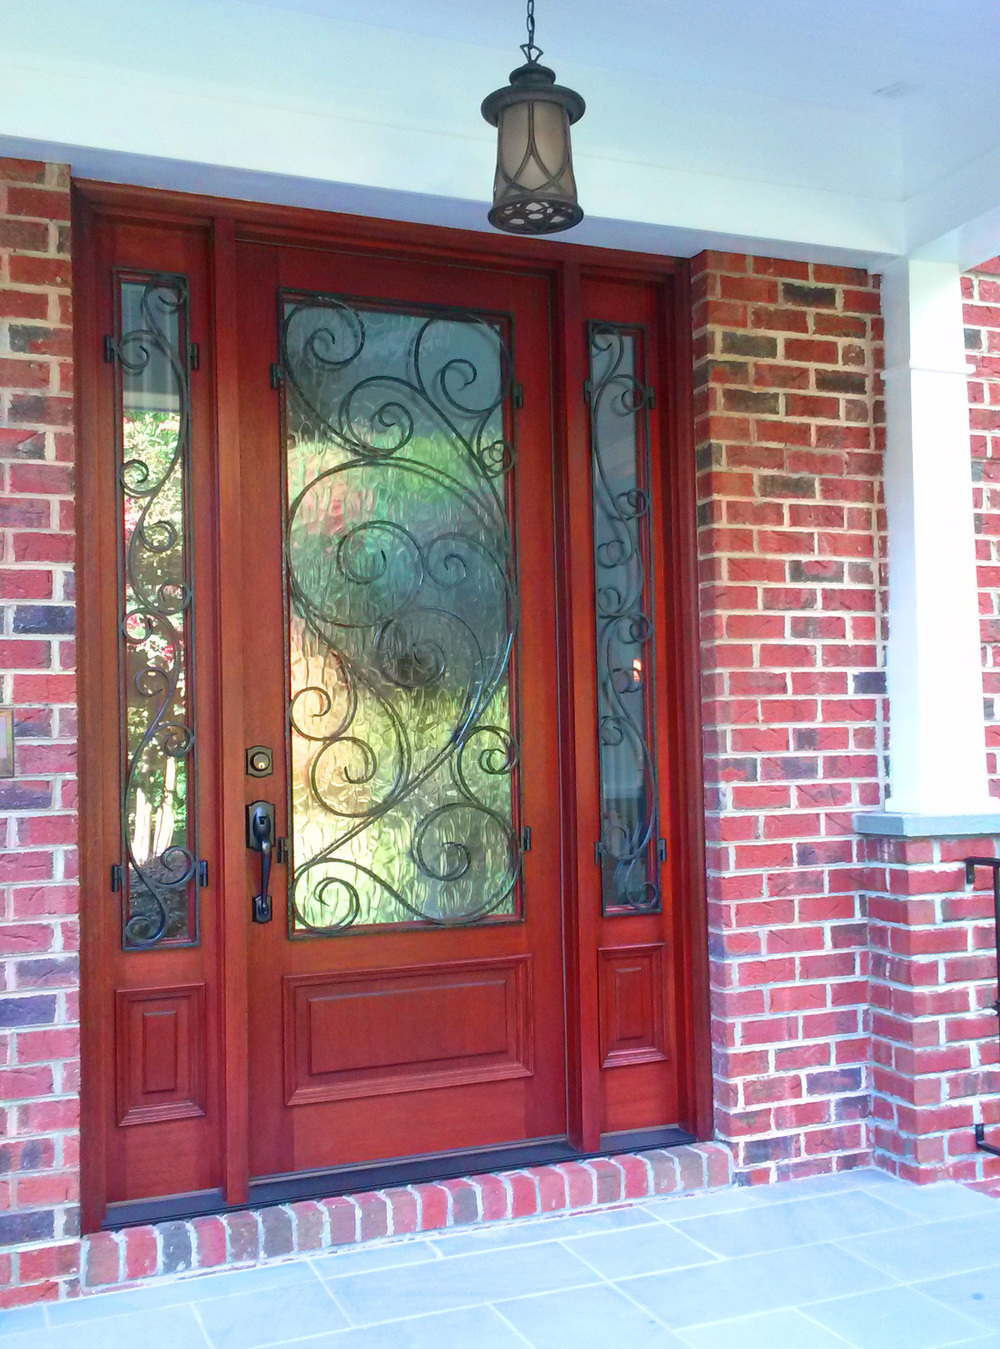 A beautiful new mahogany entry door with art glass and wrought iron detail provides a level of grandeur as one enters the porch.